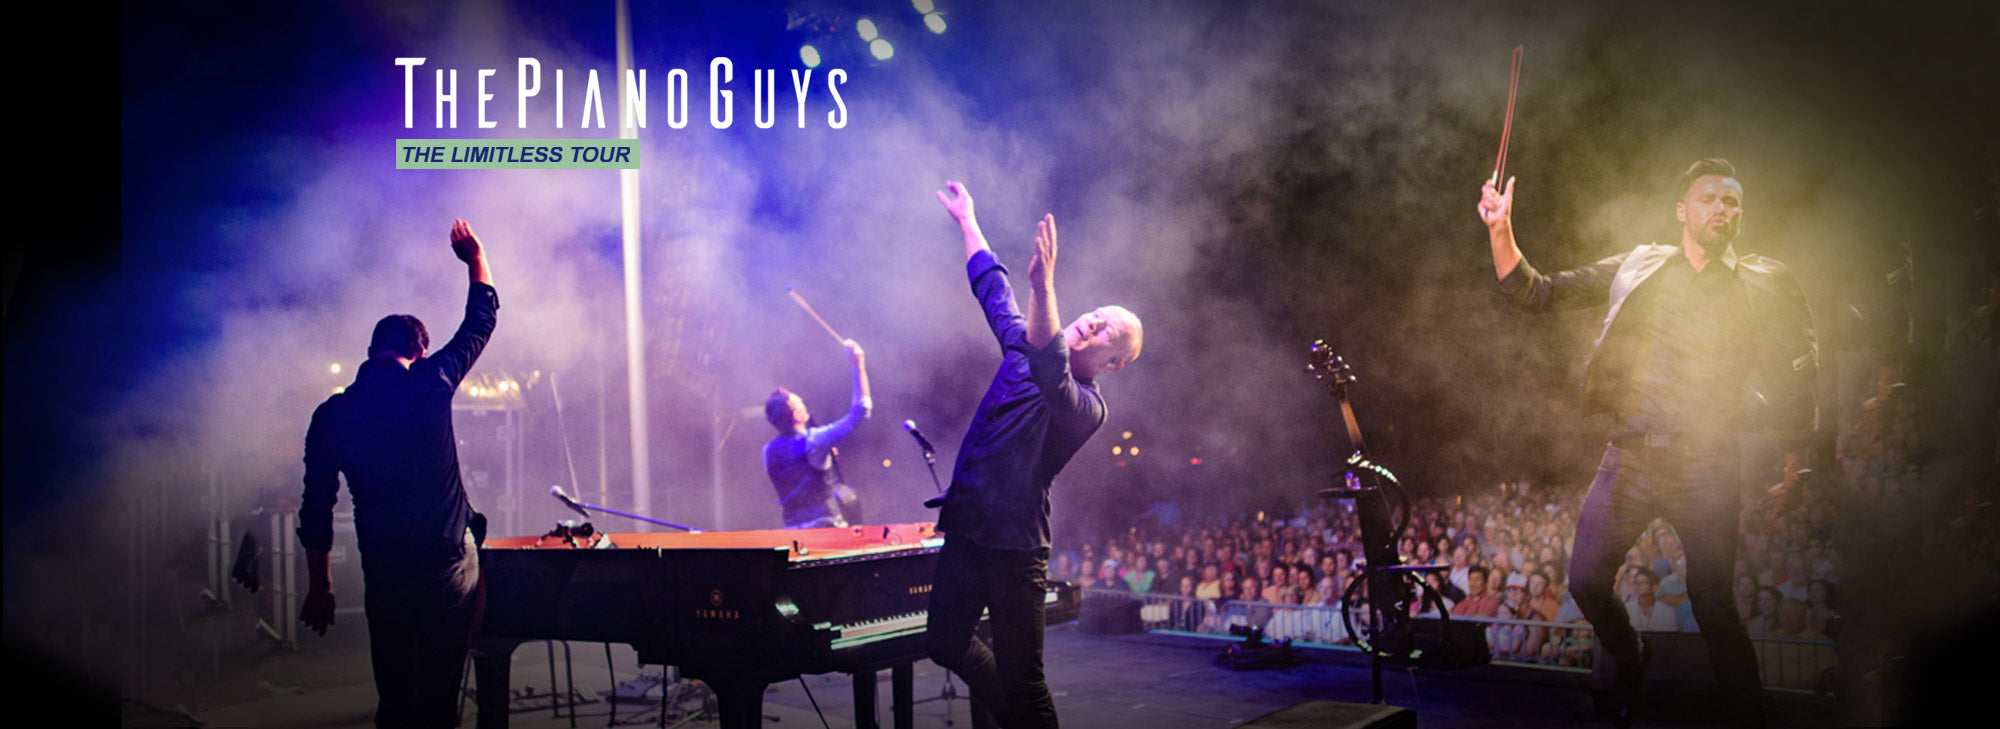 The Piano Guys™ Official Store | Shop Products, Music & More